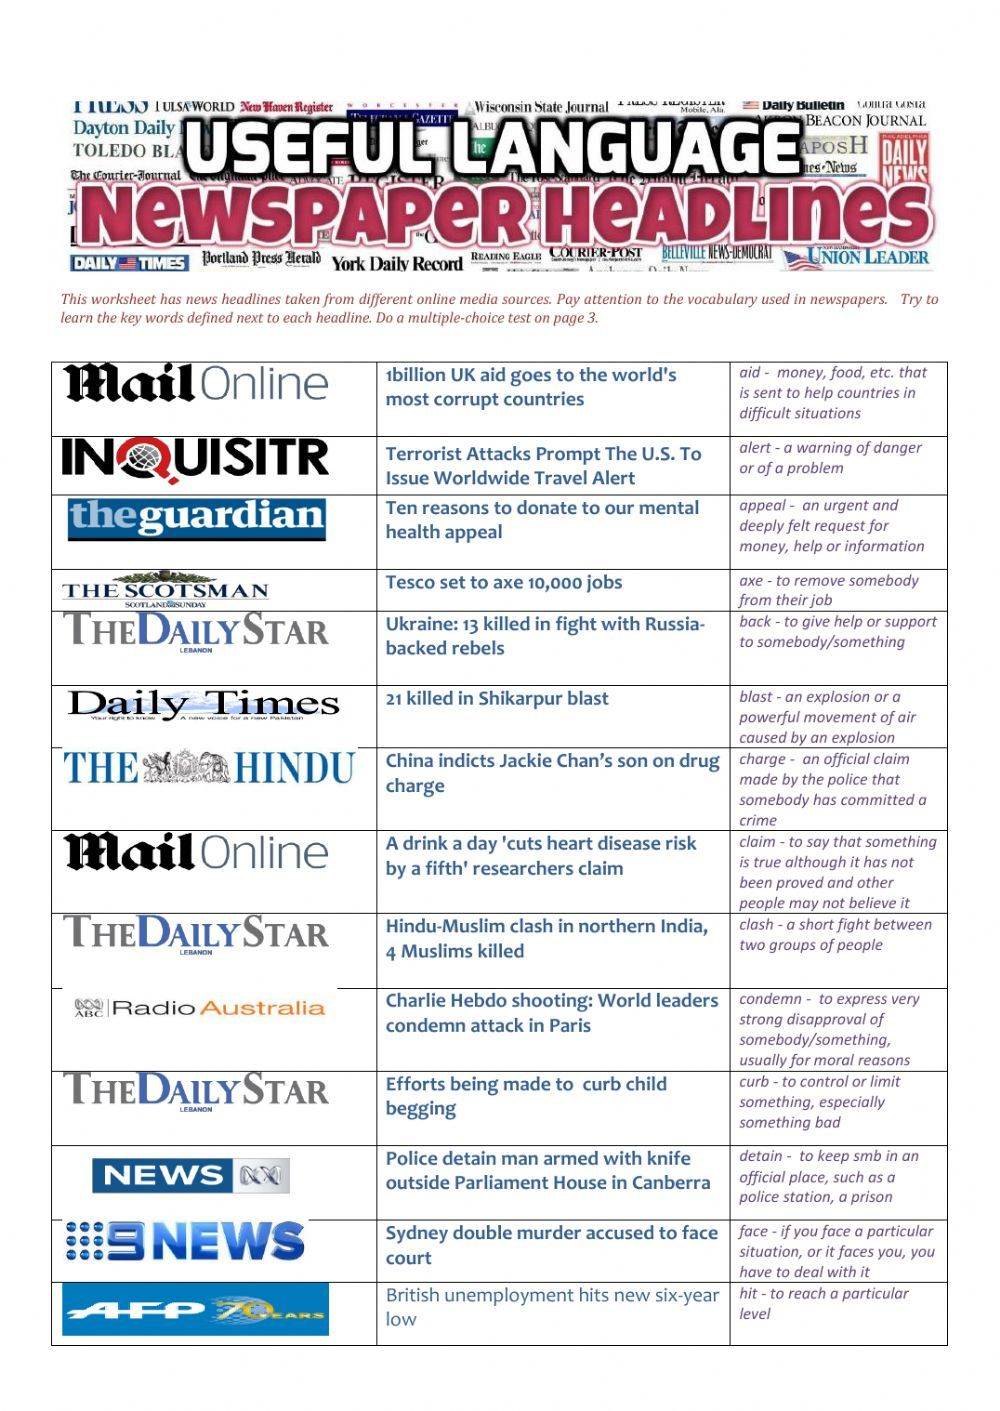 NEWSPAPER HEADLINES Useful Language Interactive worksheet – English As a Second Language Worksheets